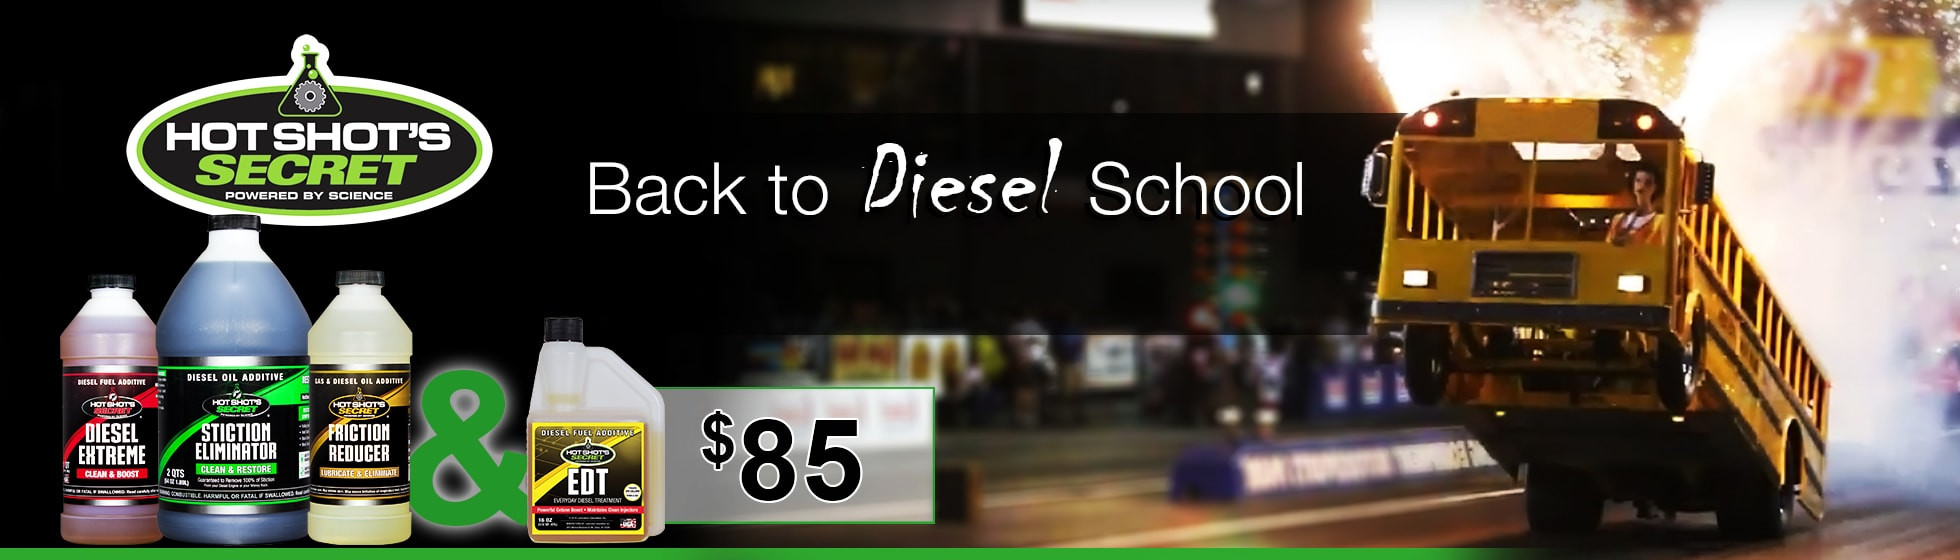 Back to Diesel School